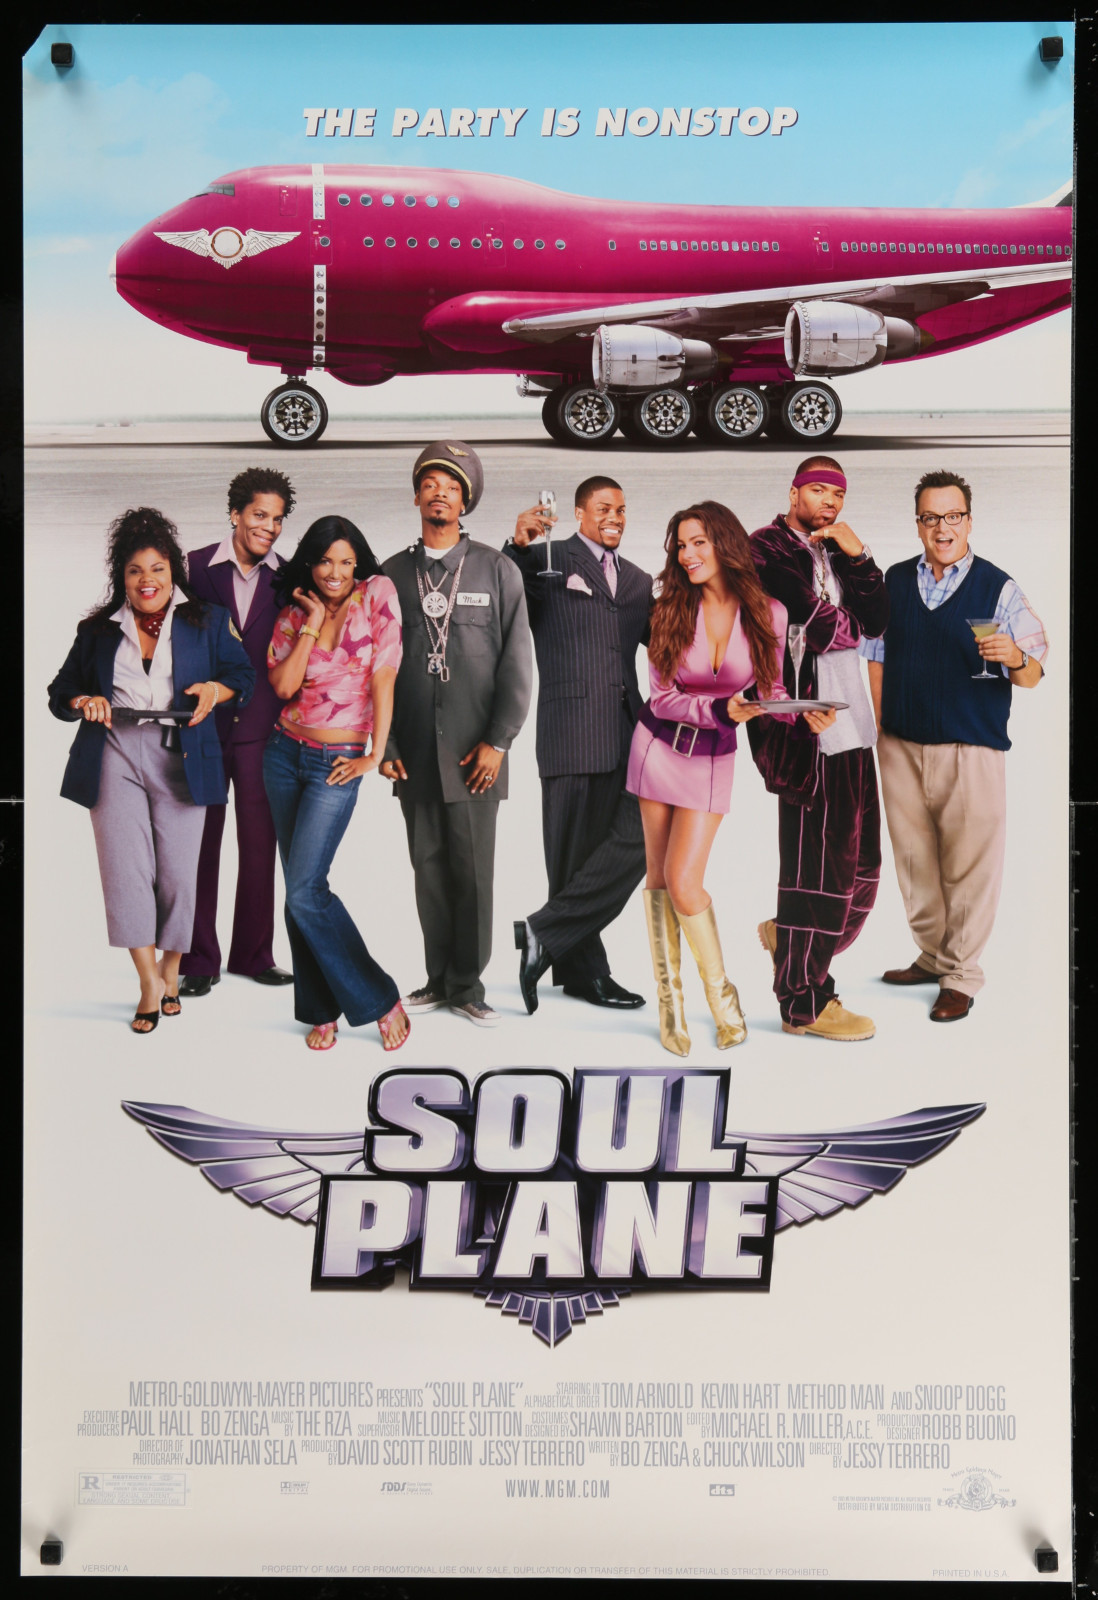 Soul Plane 2A438 A Part Of A Lot 18 Unfolded Double-Sided 27X40 Mostly Comedy One-Sheets '90S-00S Great Movie Images!